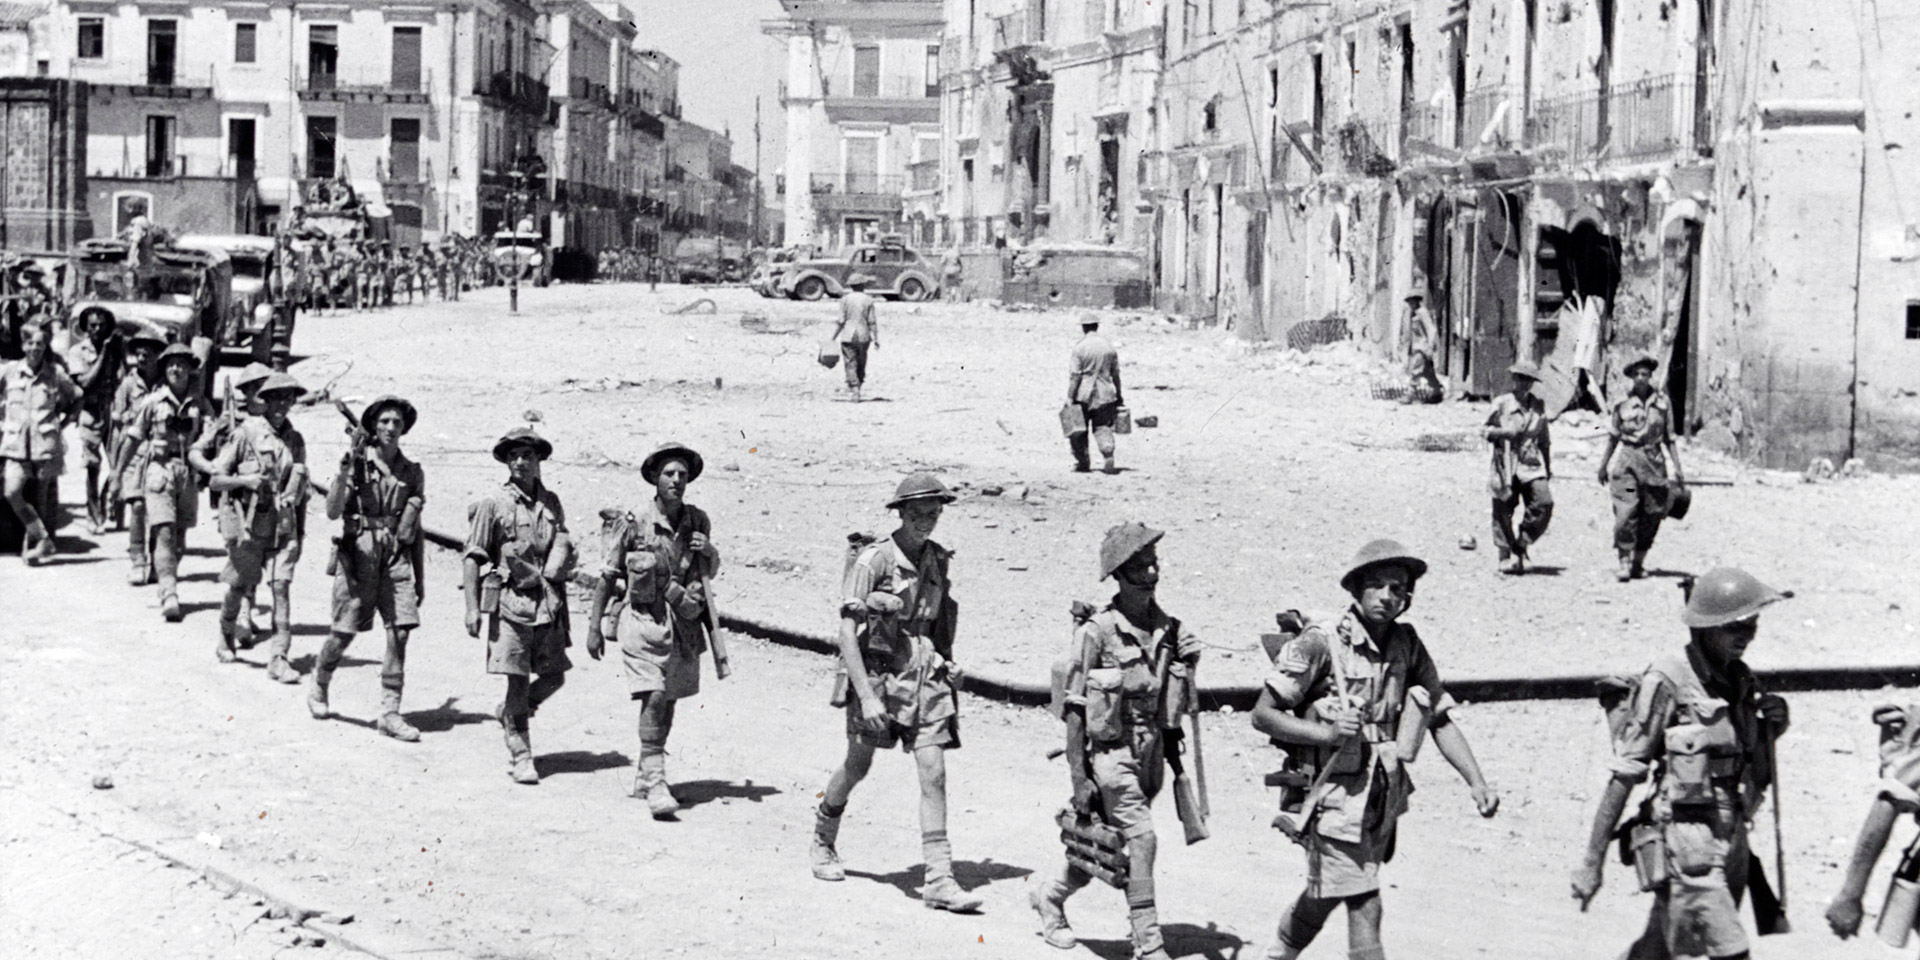 Men from the 5th Battalion, The Northamptonshire Regiment, entering the town of Adrano, Sicily, August 1943